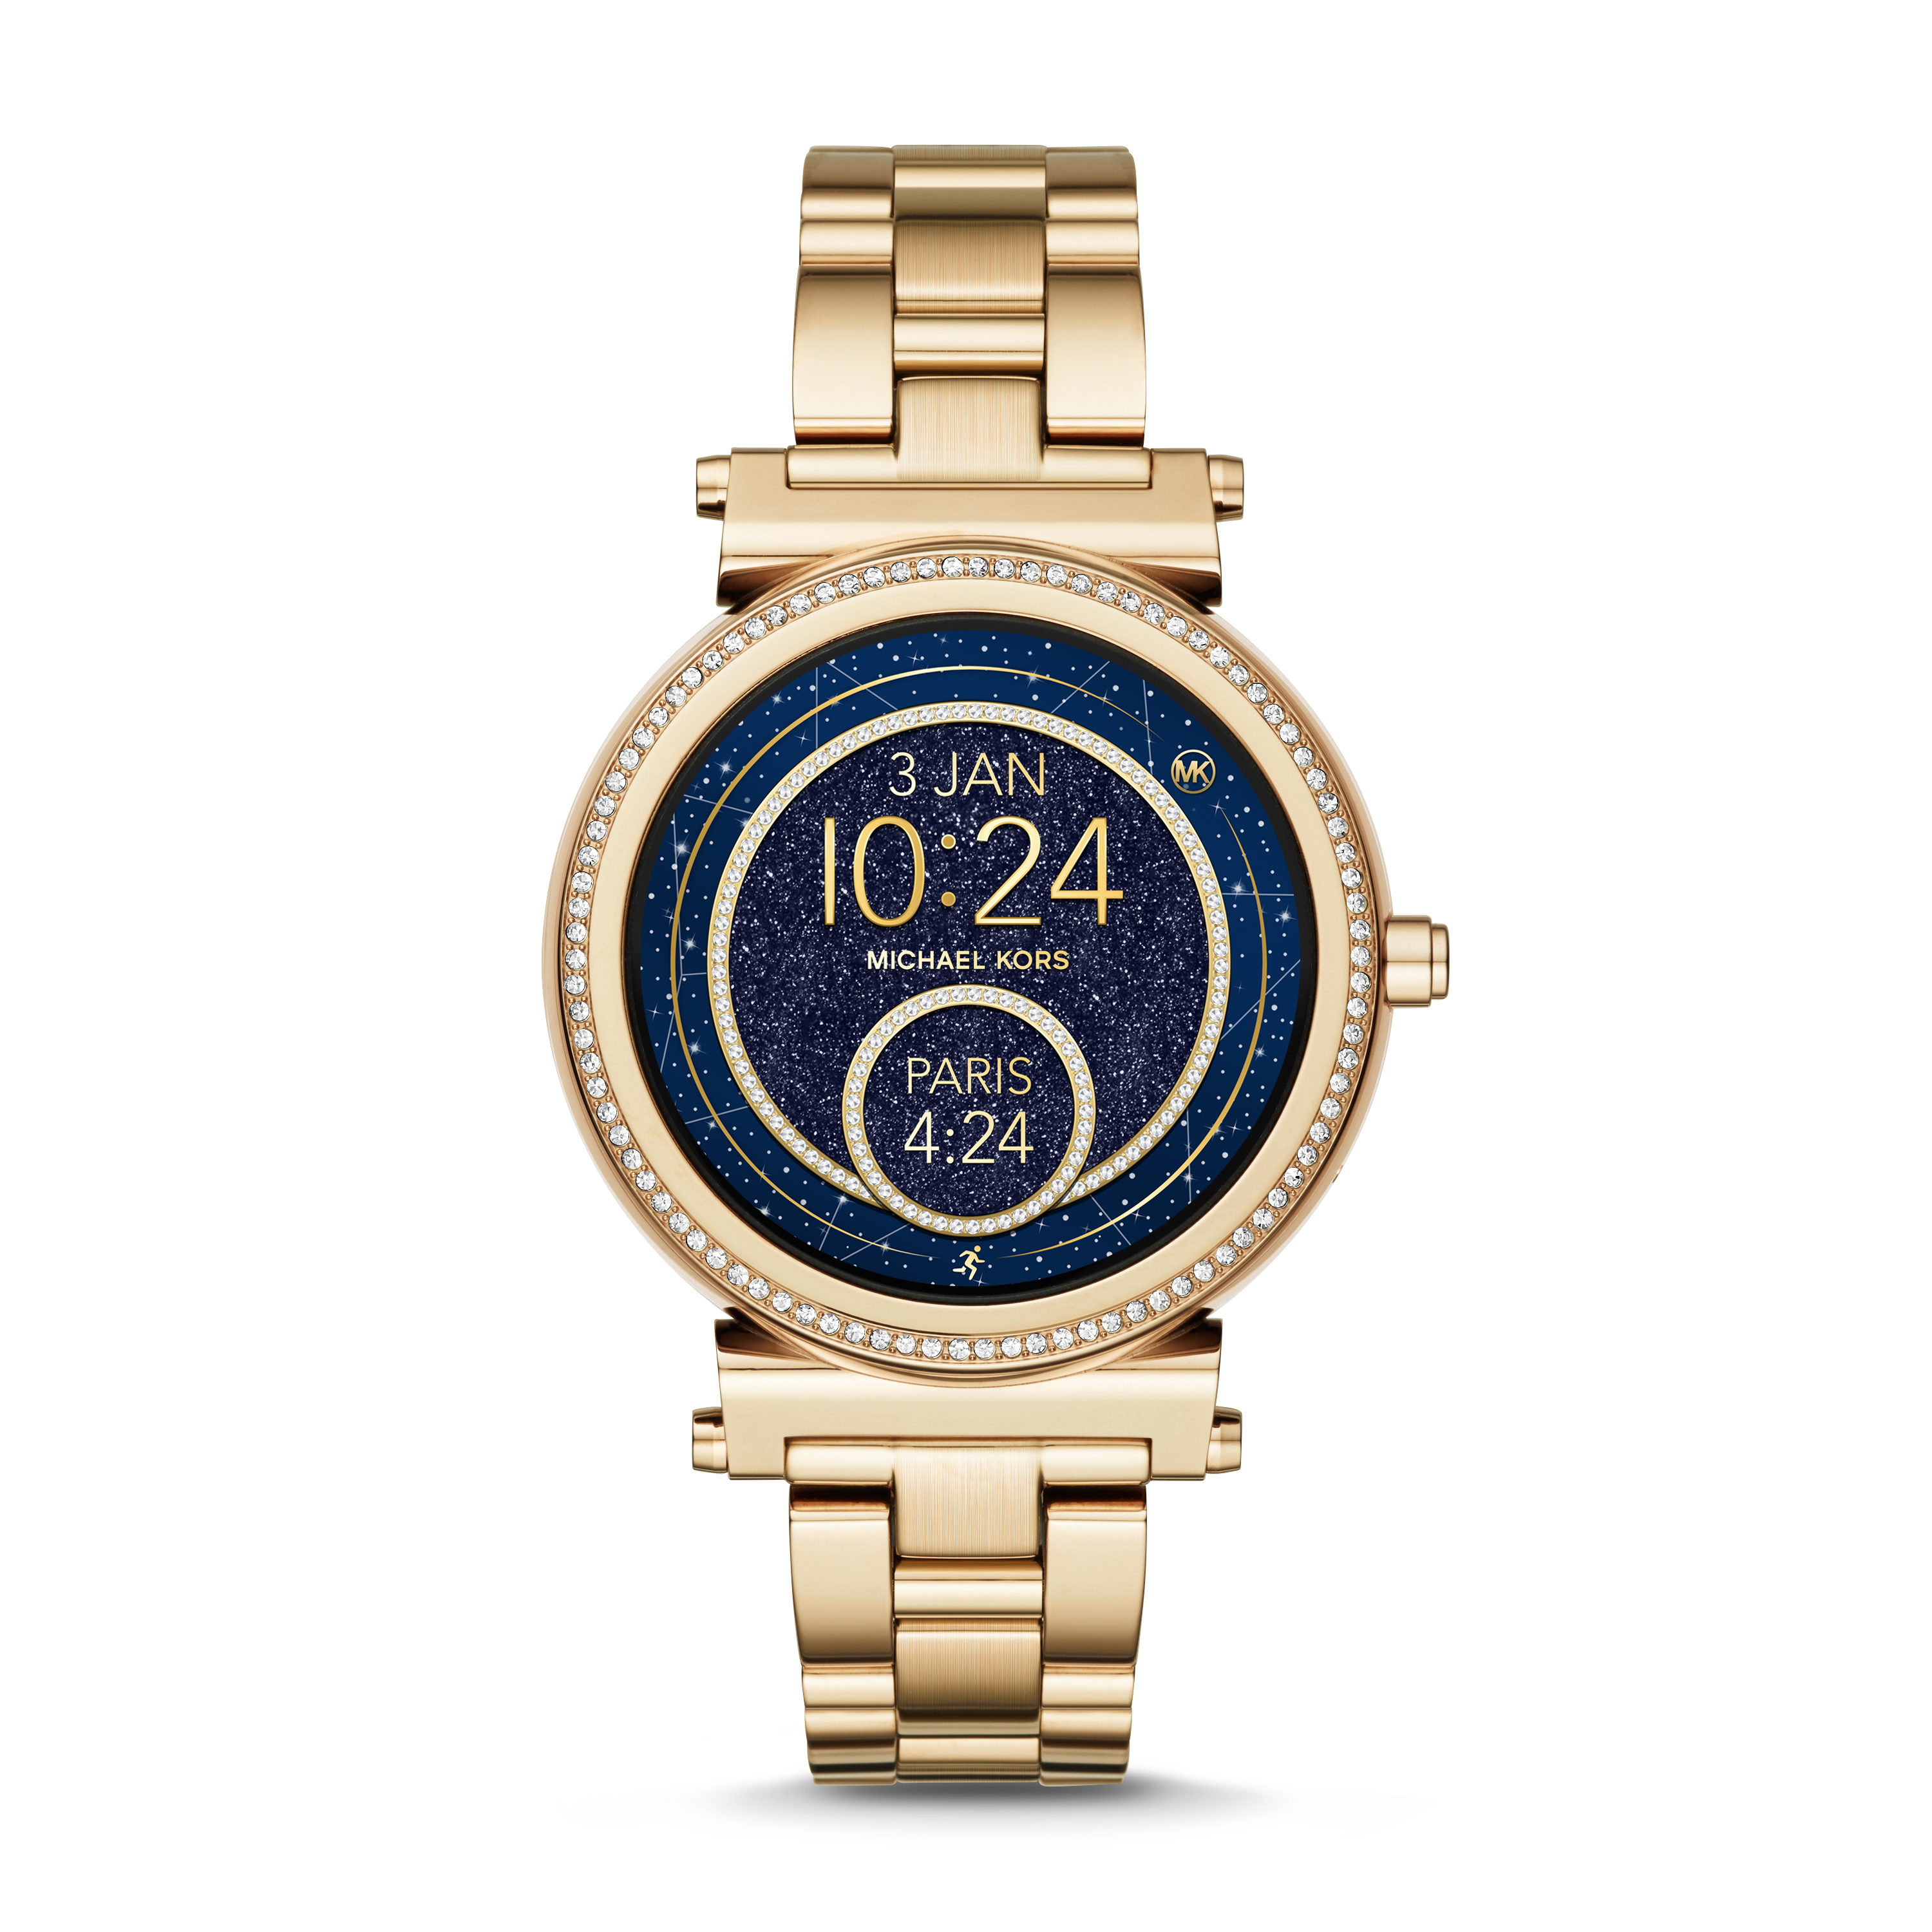 5e4aee5ae Both watches feature rotating crown dials, AMOLED displays, and the  Snapdragon Wear 2100 chipset platform inside. Look for these to hit later  this year with ...